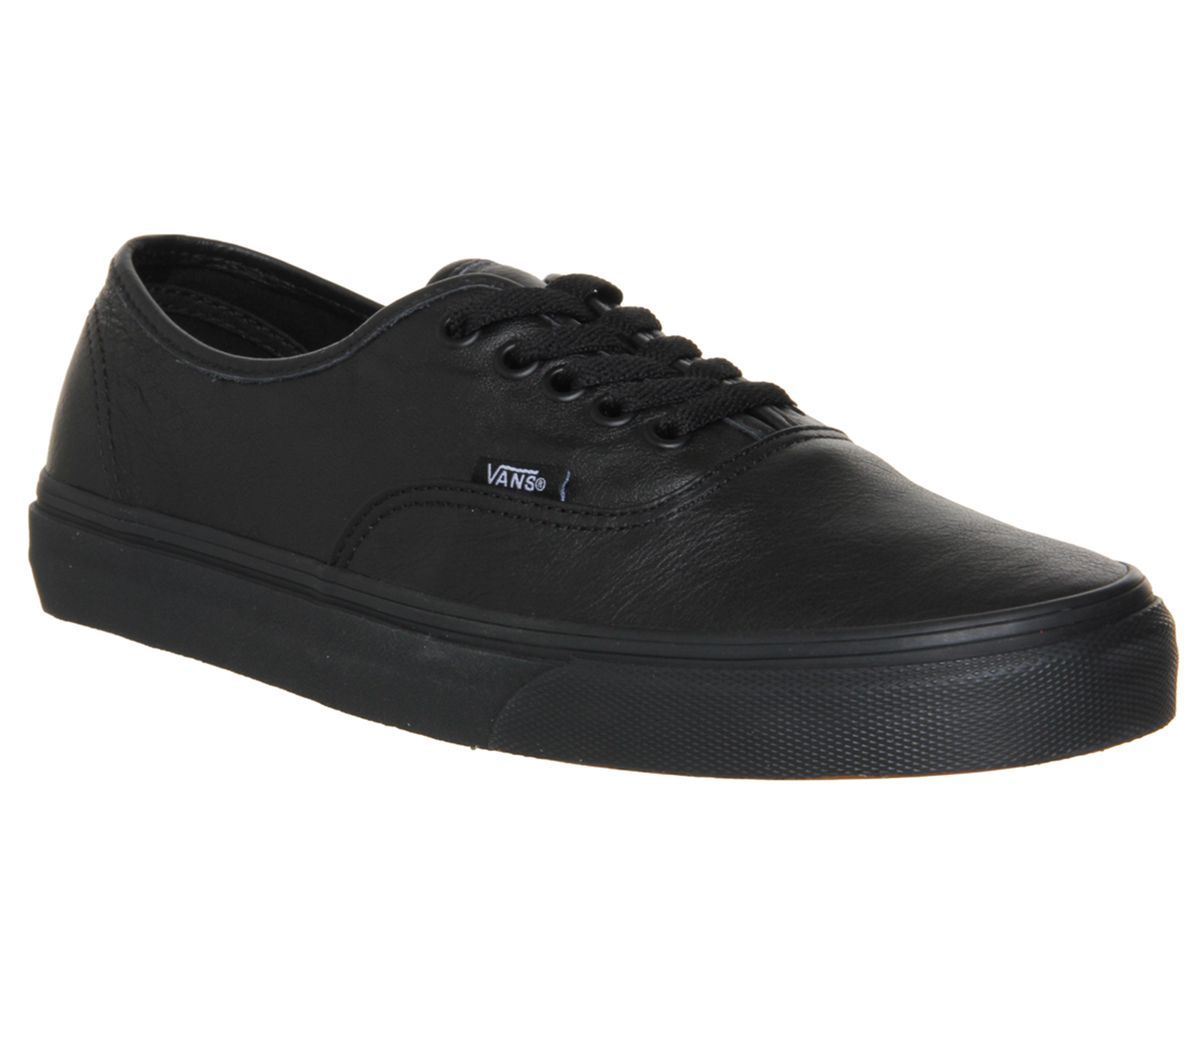 49a8a5de74 Vans Authentic Leather Black Mono - Unisex Sports